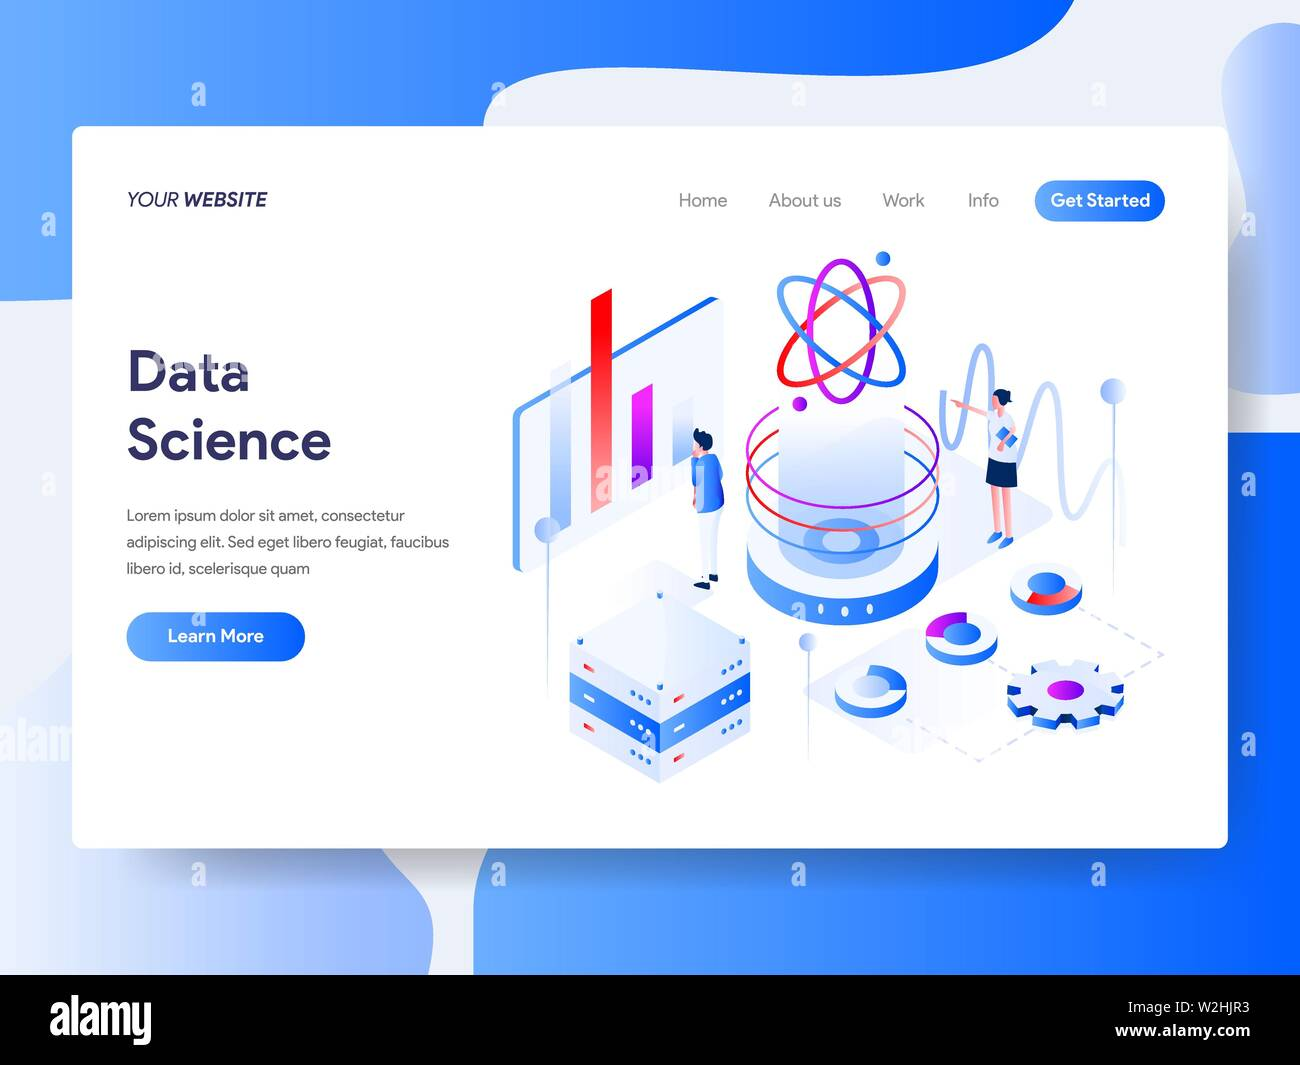 Landing page template of Data Science Isometric Illustration Concept. Isometric flat design concept of web page design for website and mobile website. - Stock Image